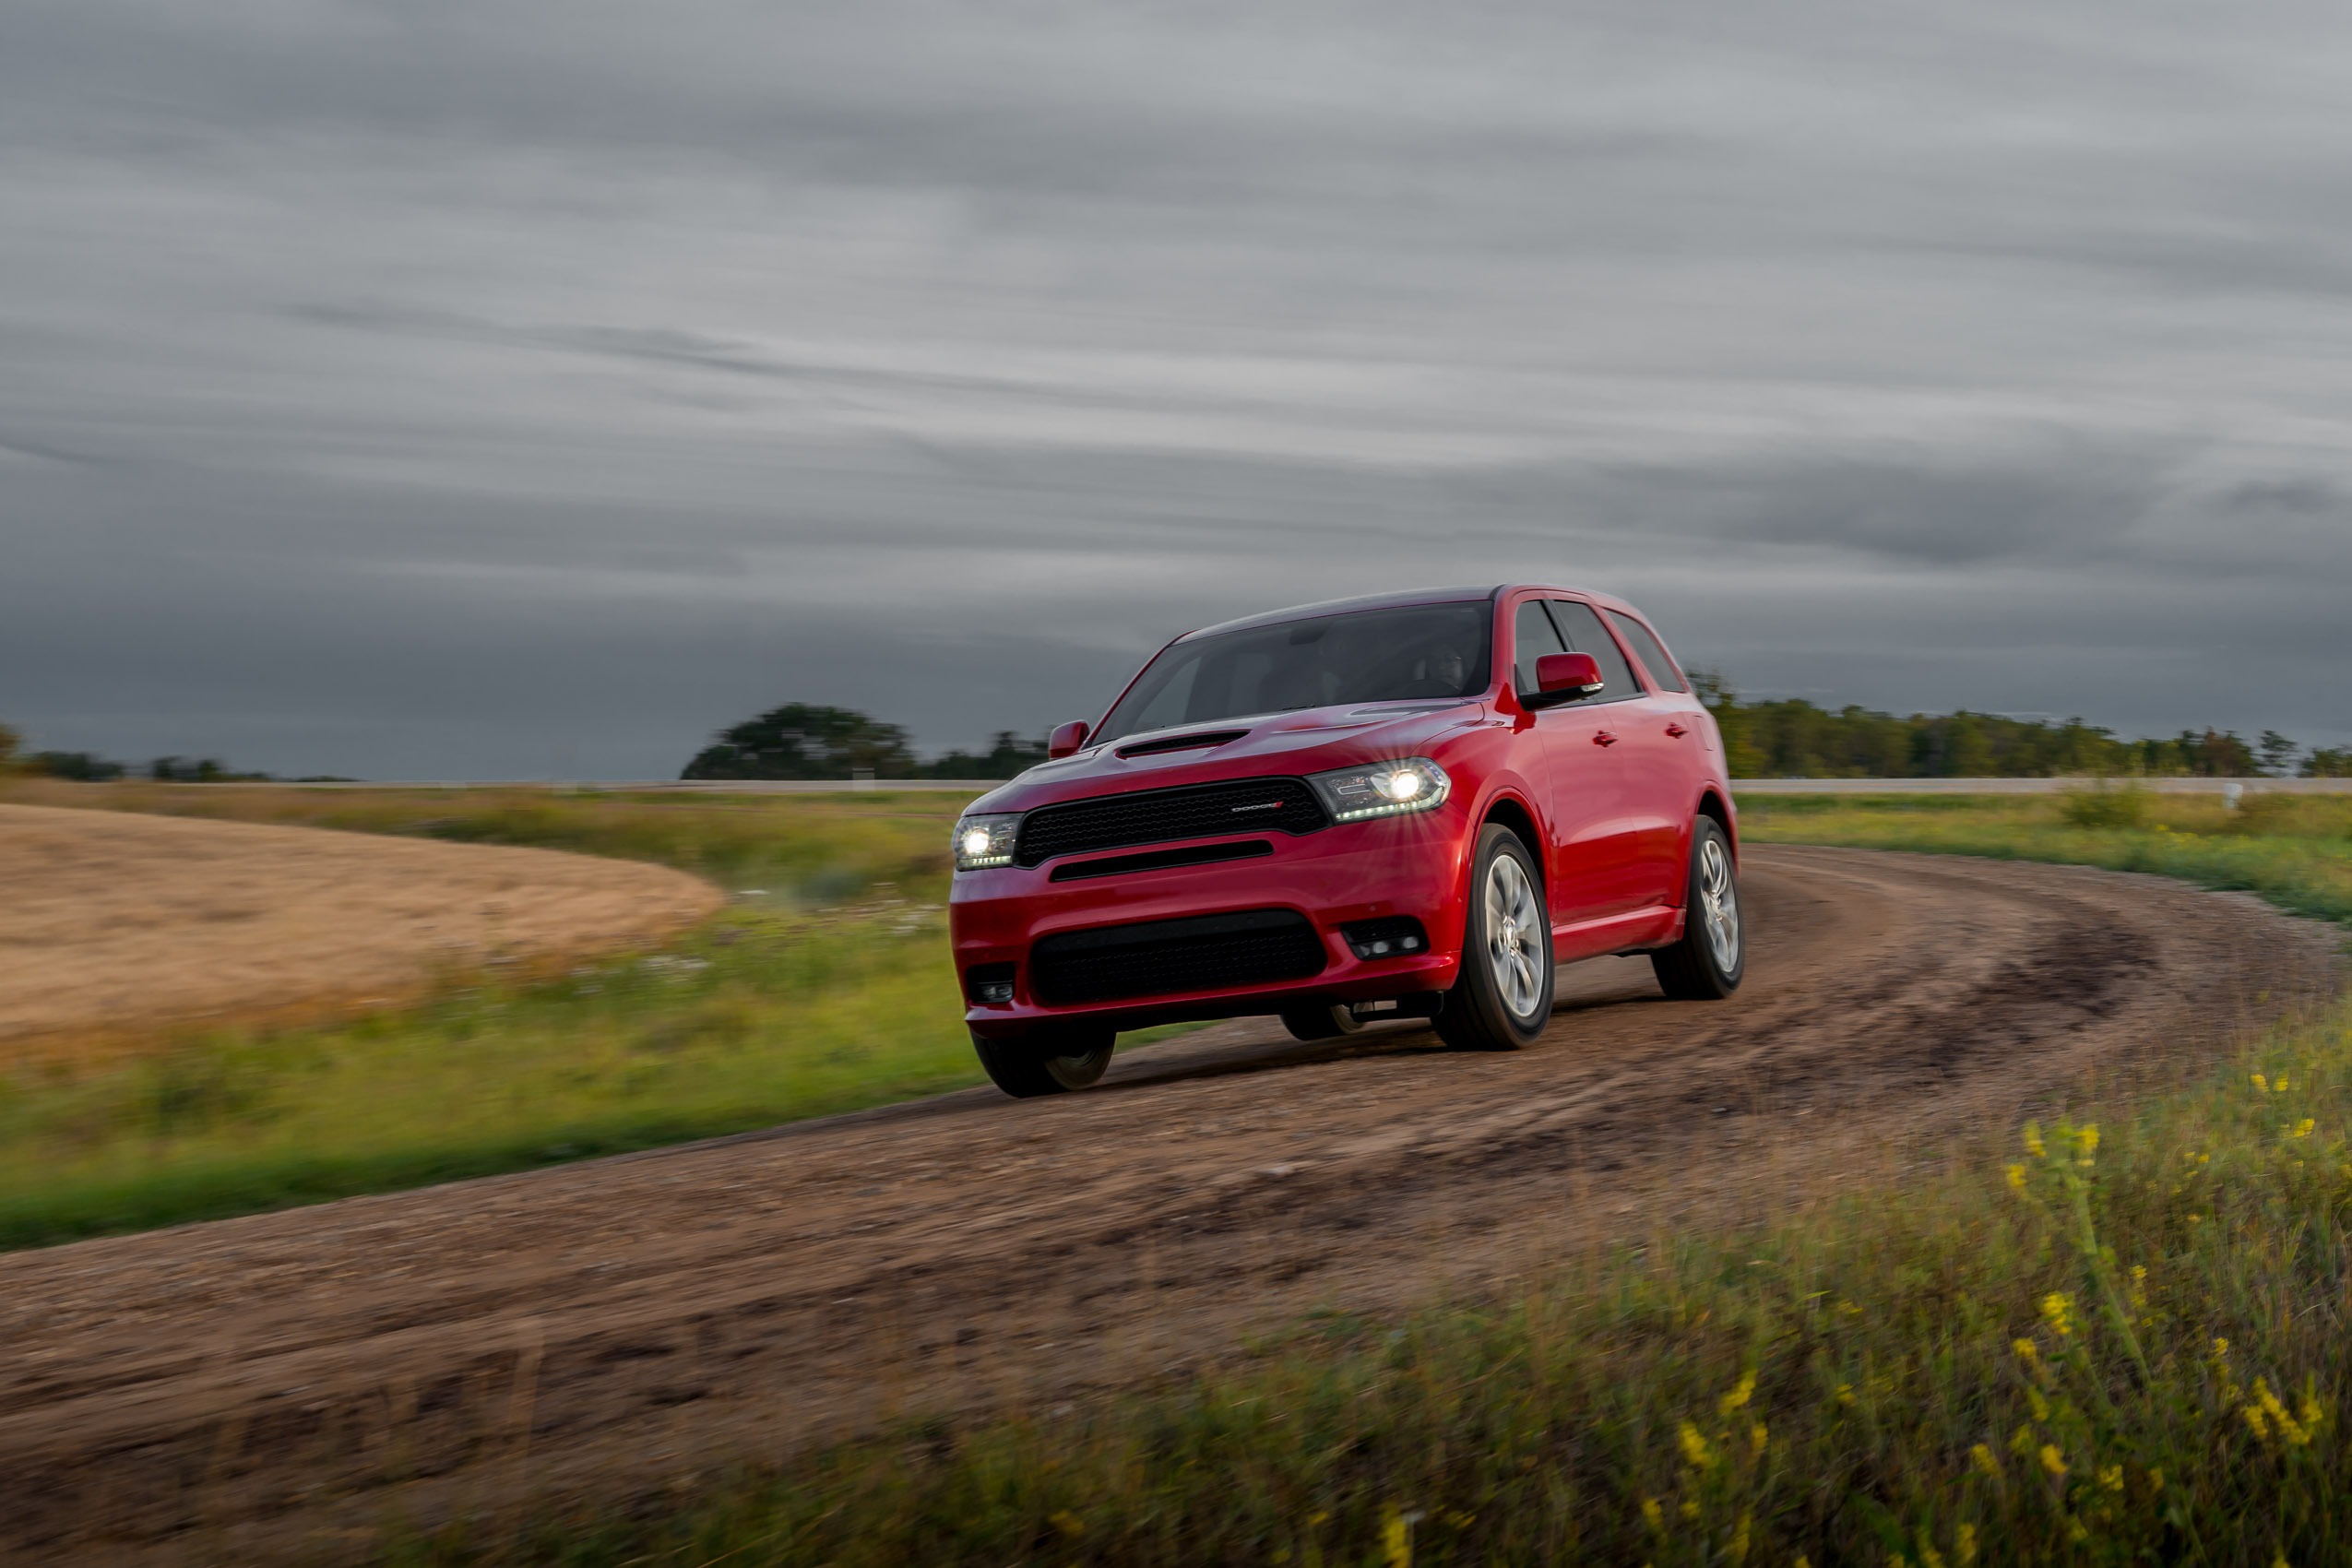 Dodge Durango Alberta Canada Karl Lee Alberta Car Photographer